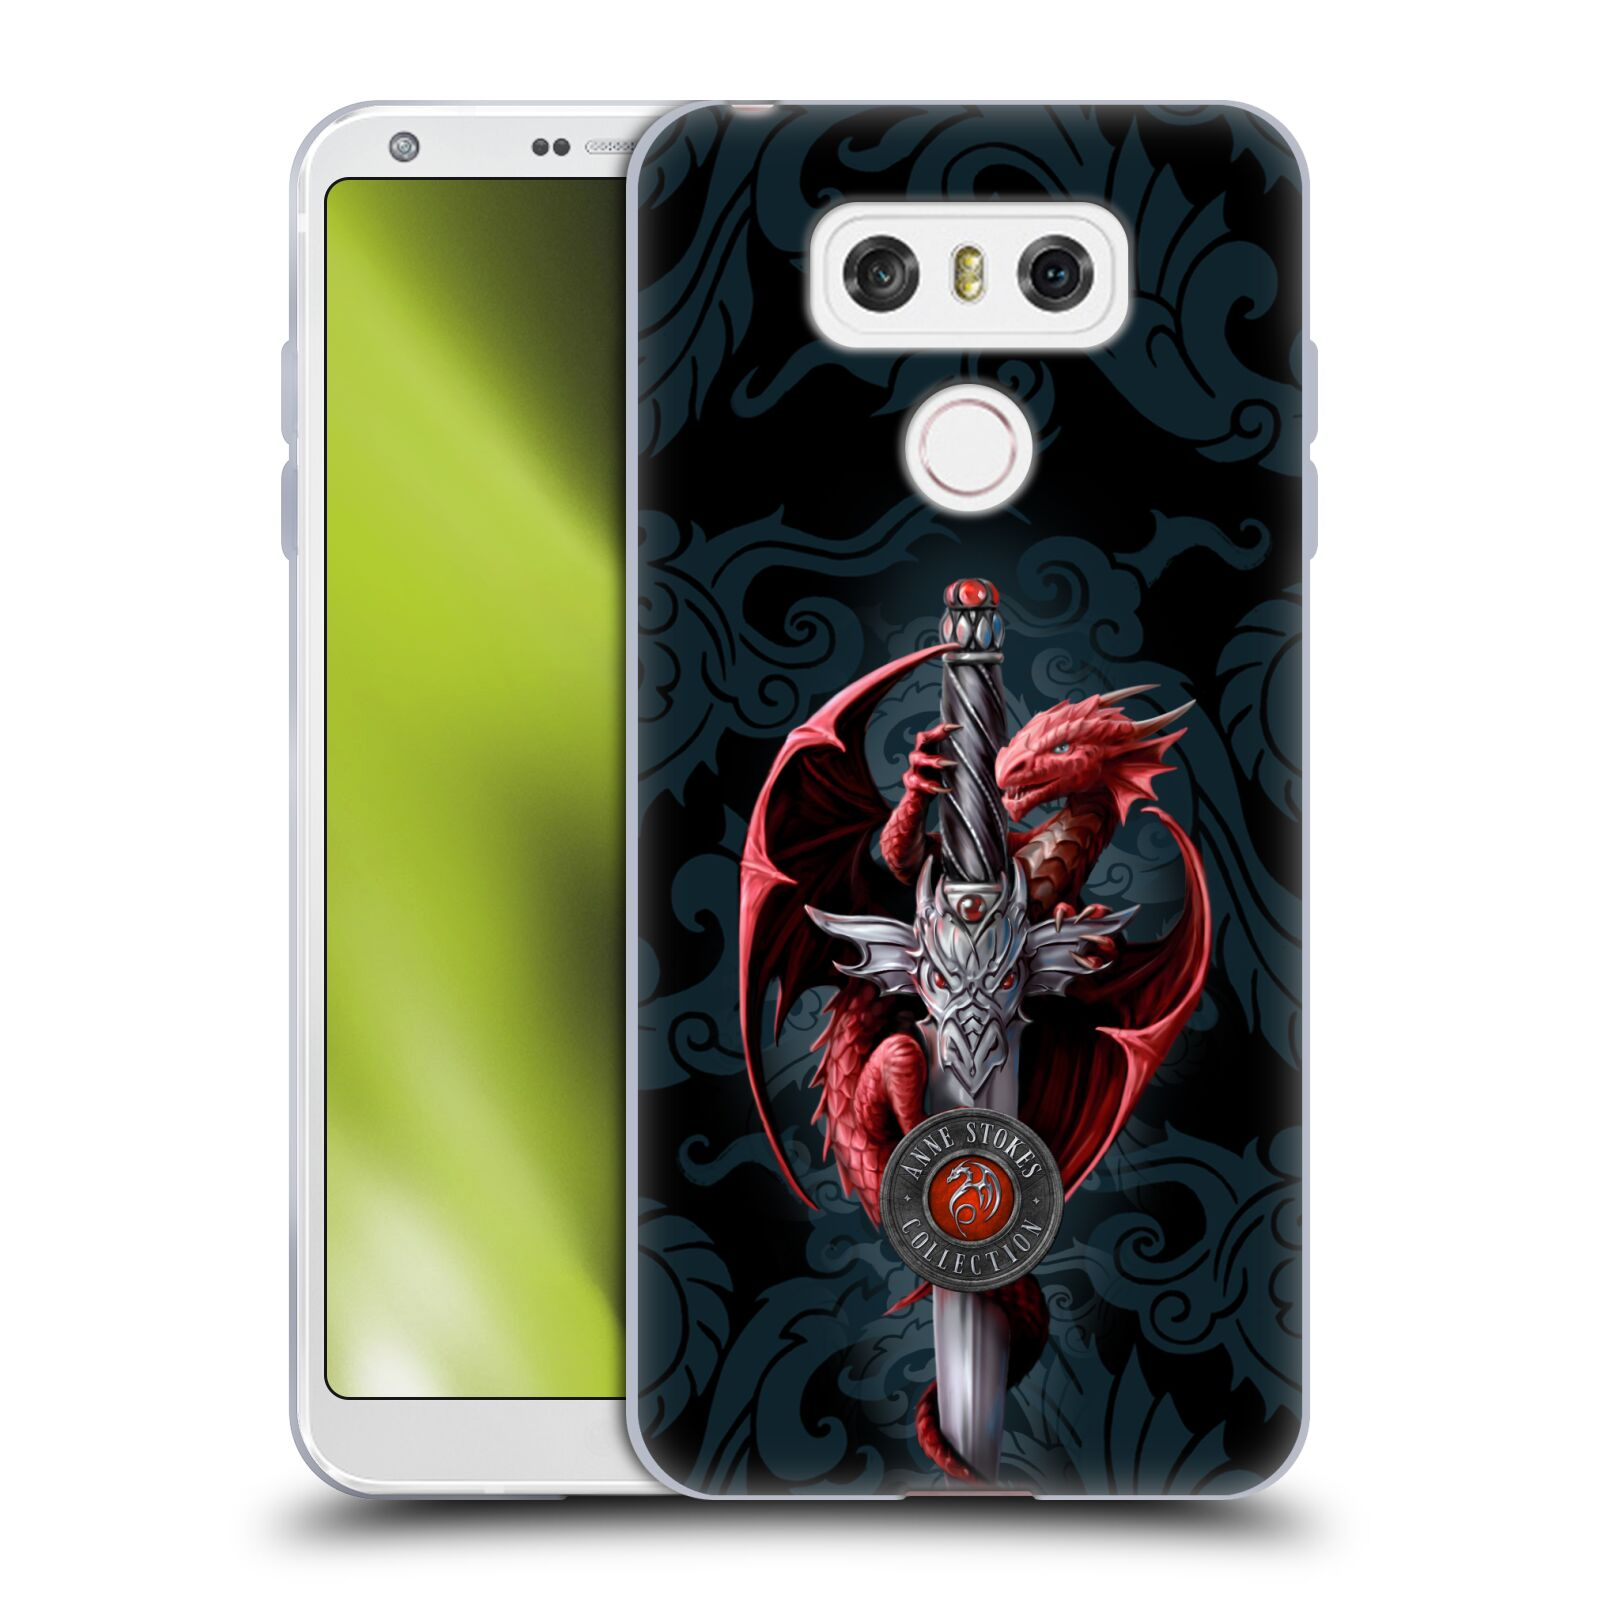 OFFICIAL-ANNE-STOKES-DRAGONS-SOFT-GEL-CASE-FOR-LG-PHONES-1